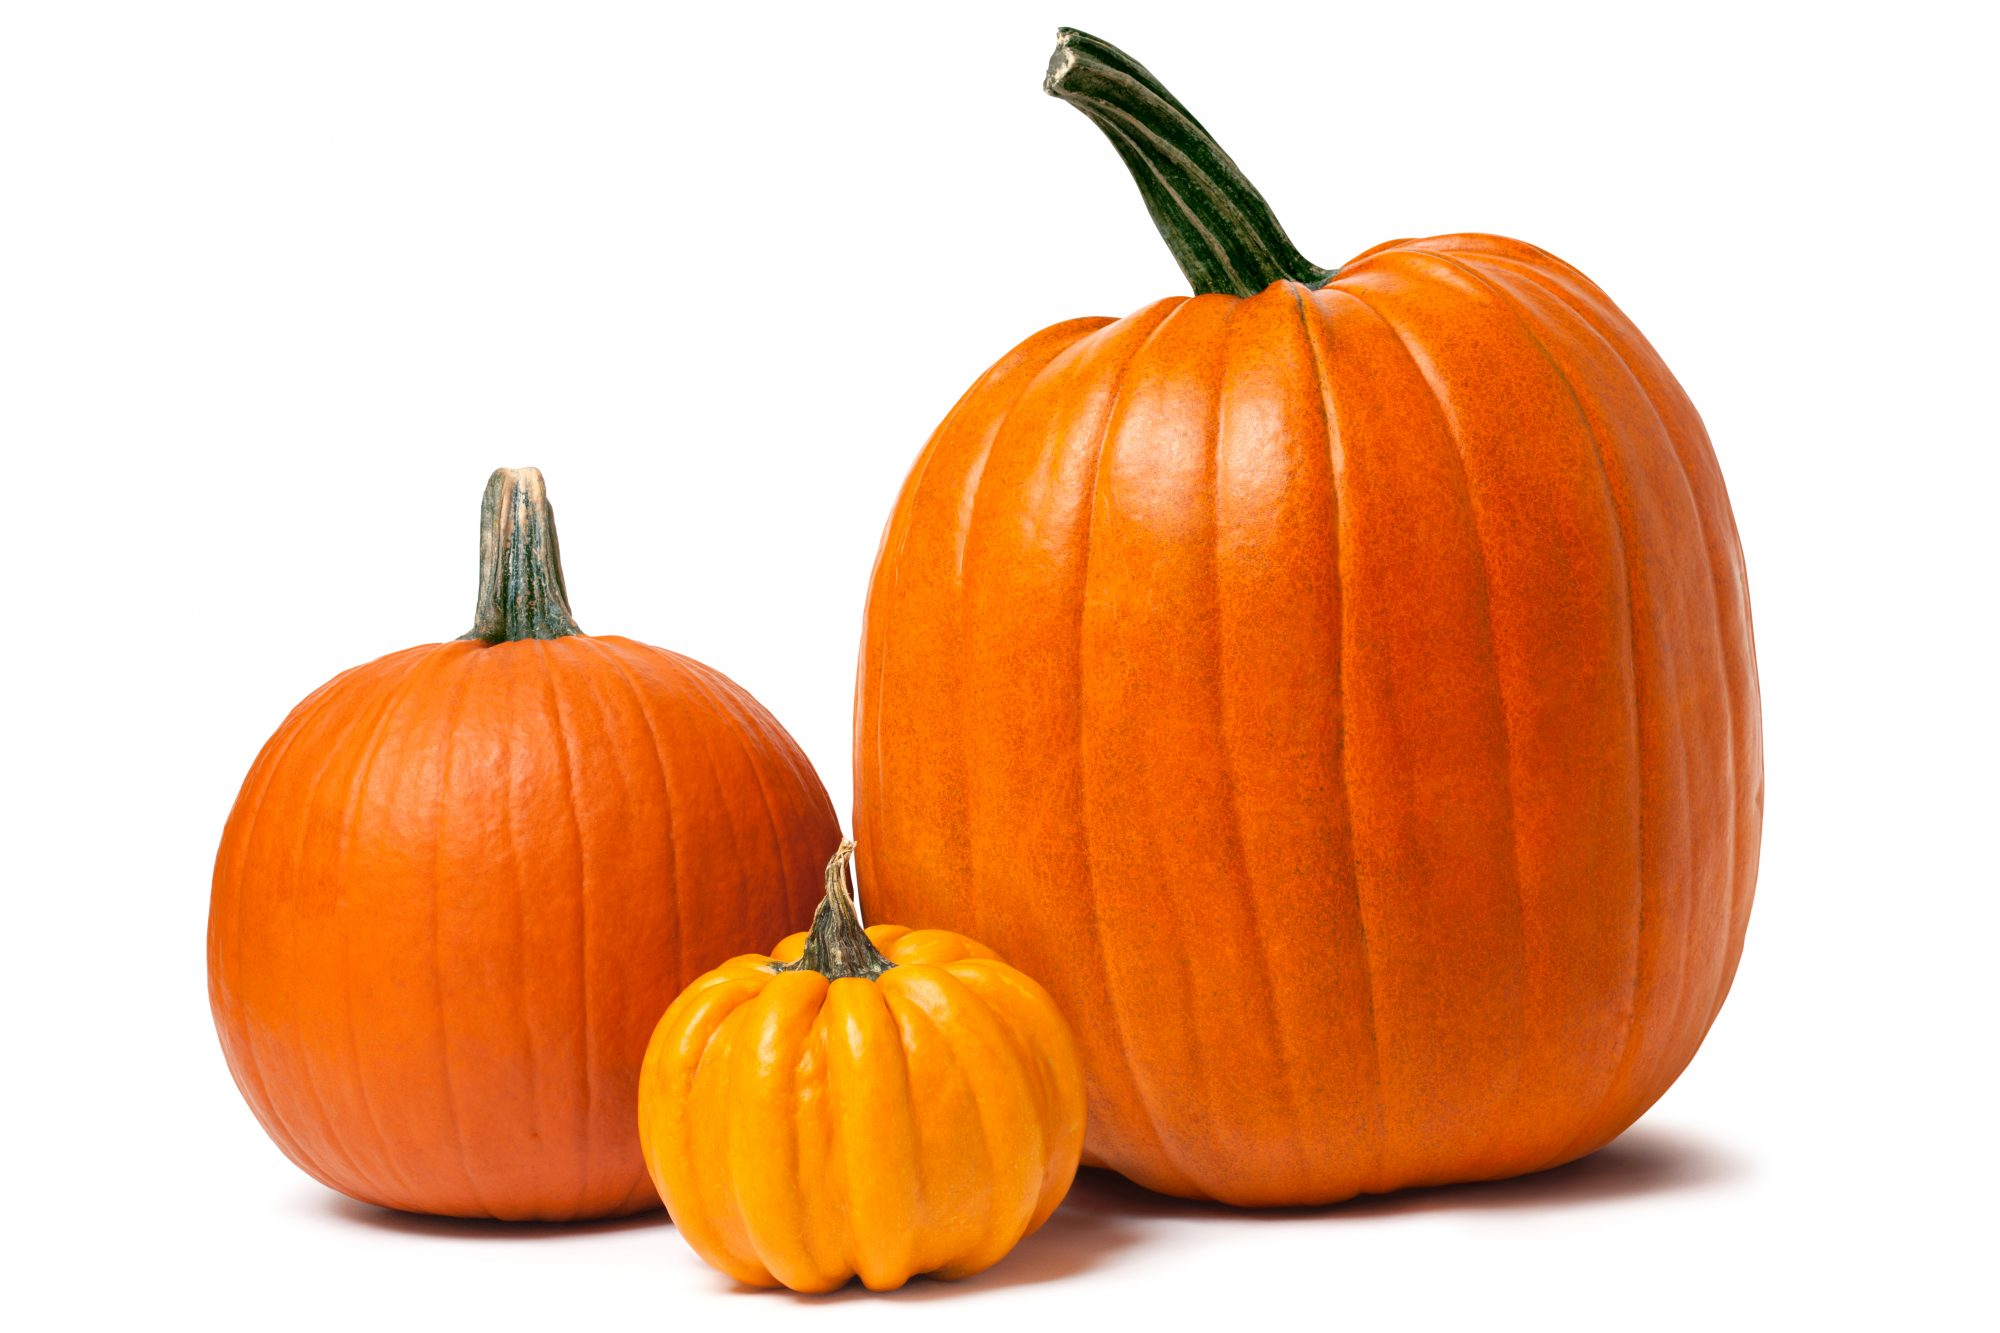 Is a Pumpkin a Fruit or a Vegetable?